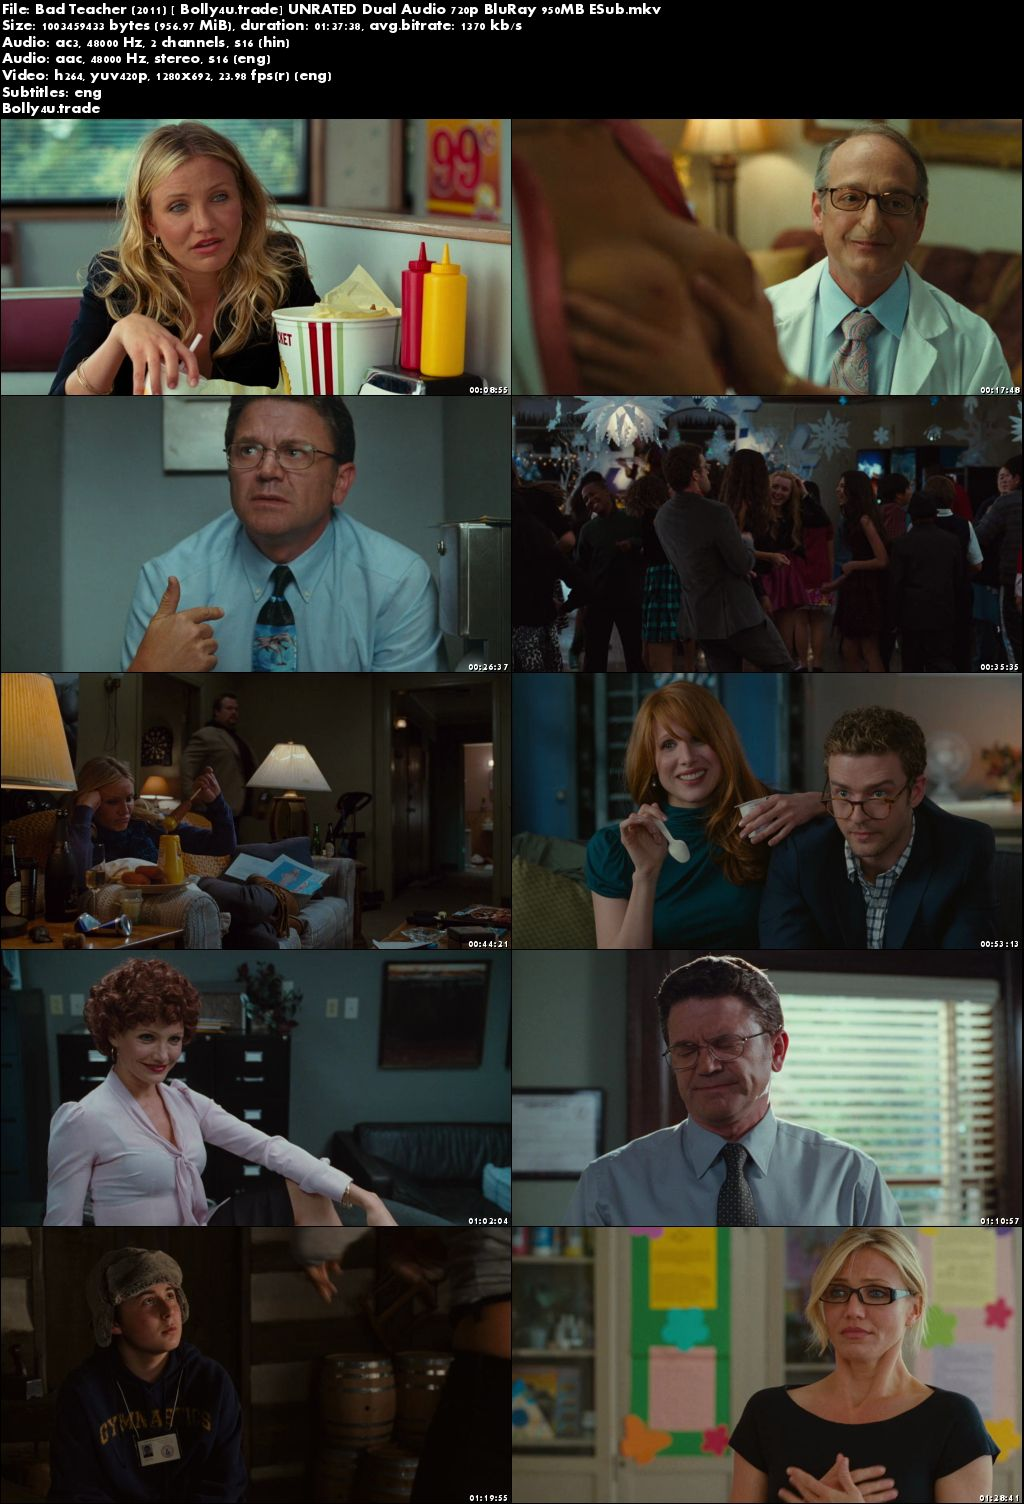 Bad Teacher 2011 BluRay 300MB UNRATED Hindi Dual Audio 480p ESub Download